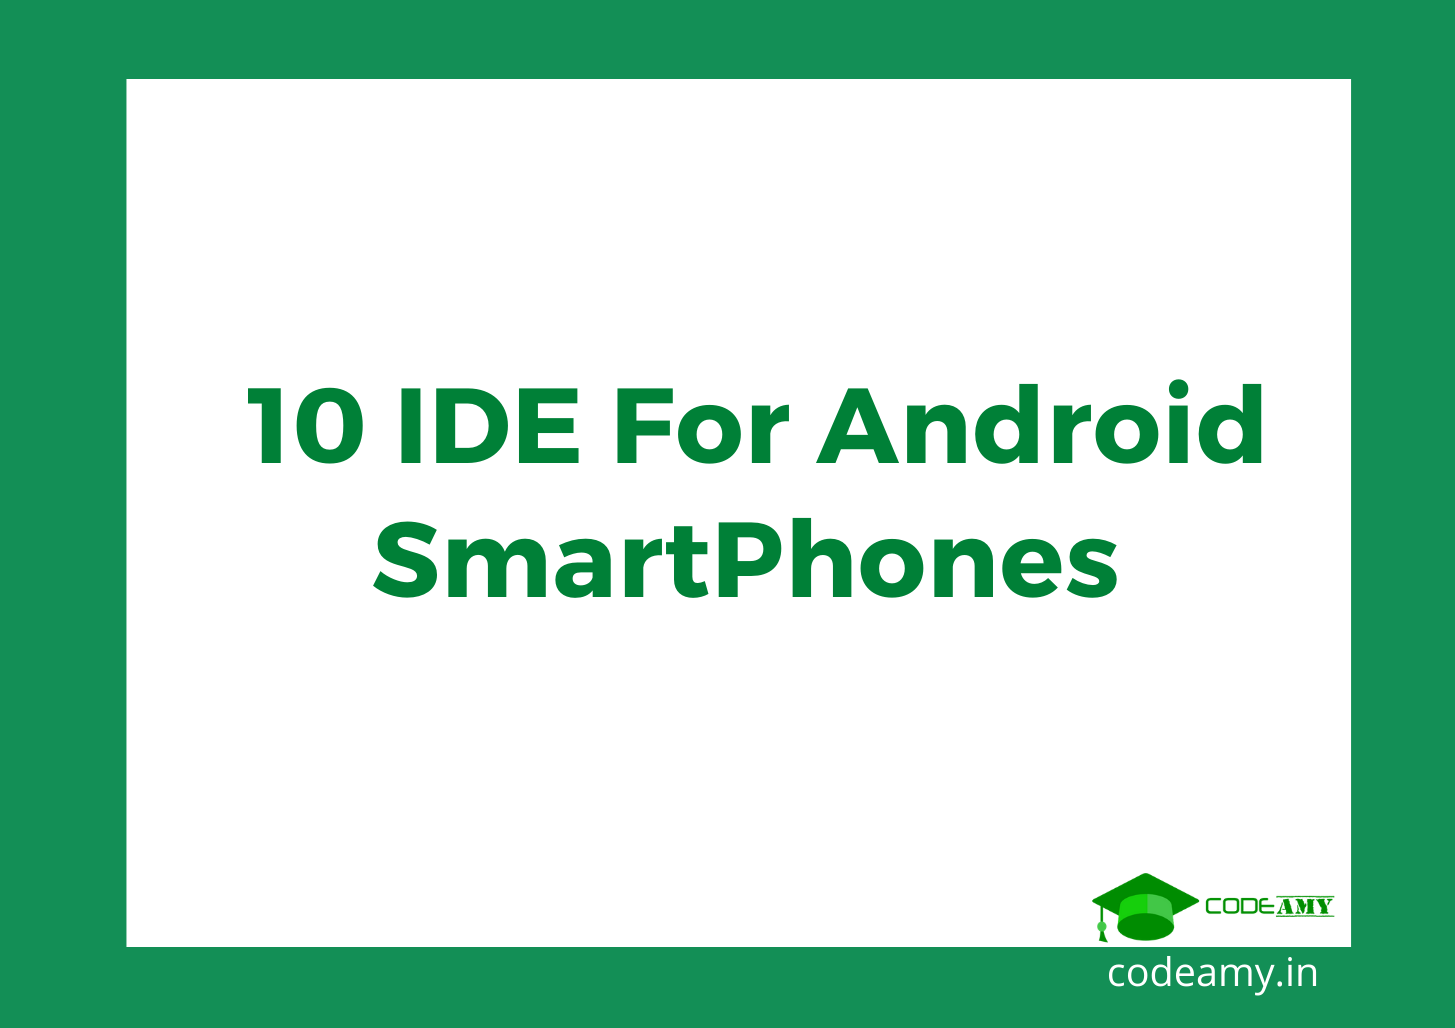 best Ide for android